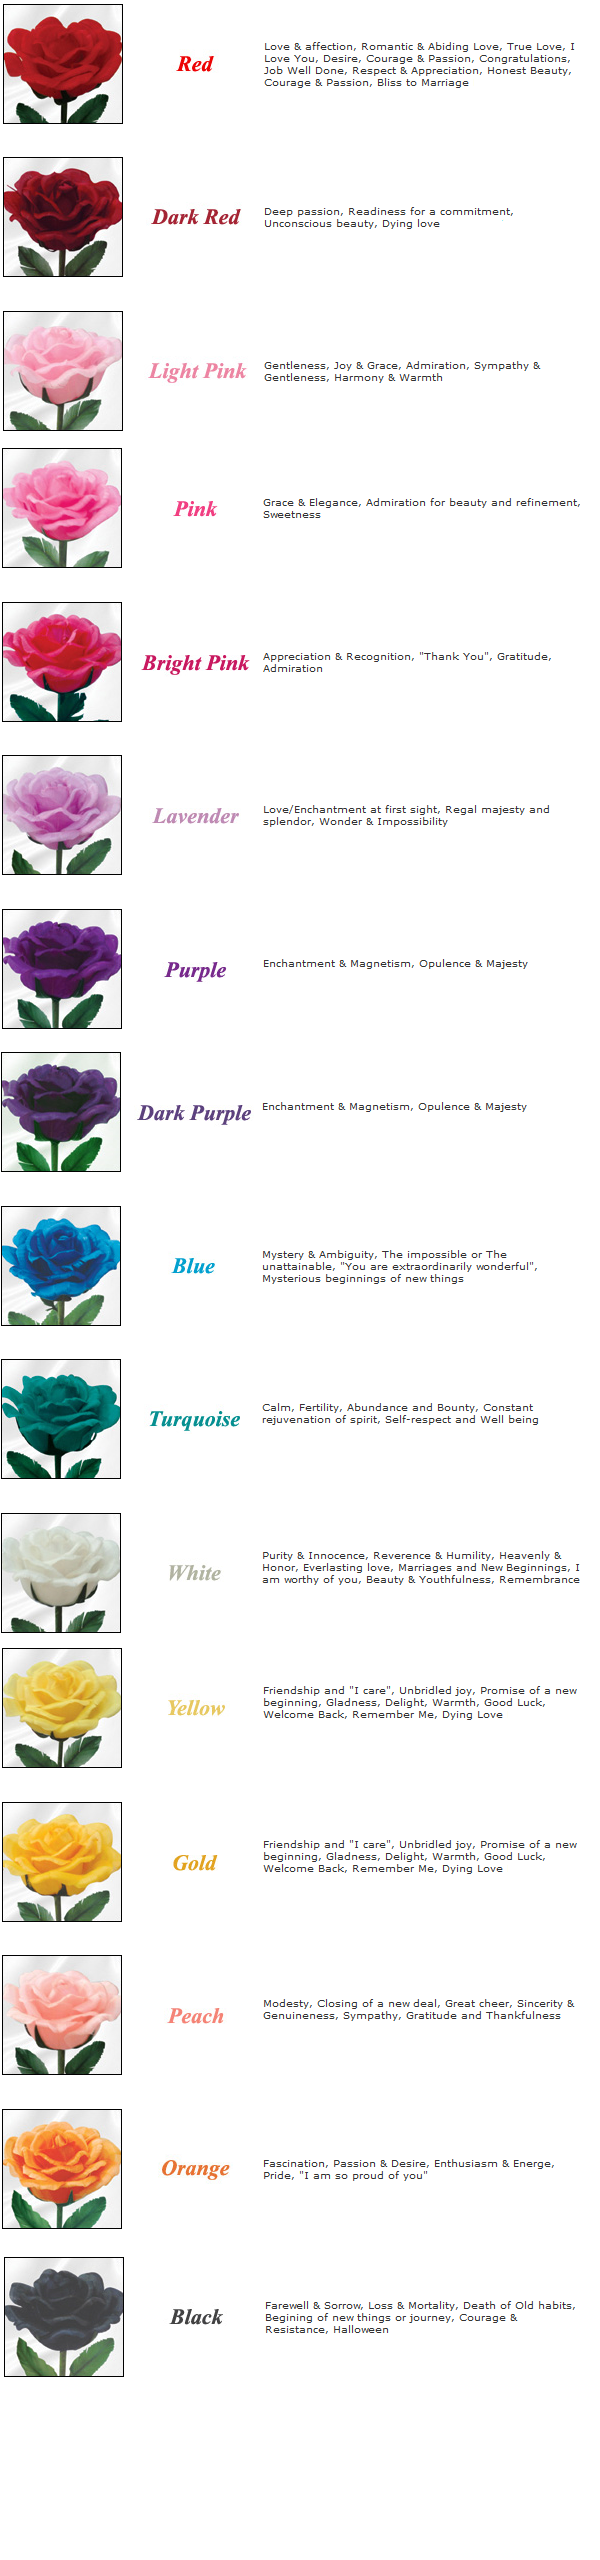 Pin By Sheikahstone559 On Cute 3 Rose Color Meanings Color Meanings Flower Meanings